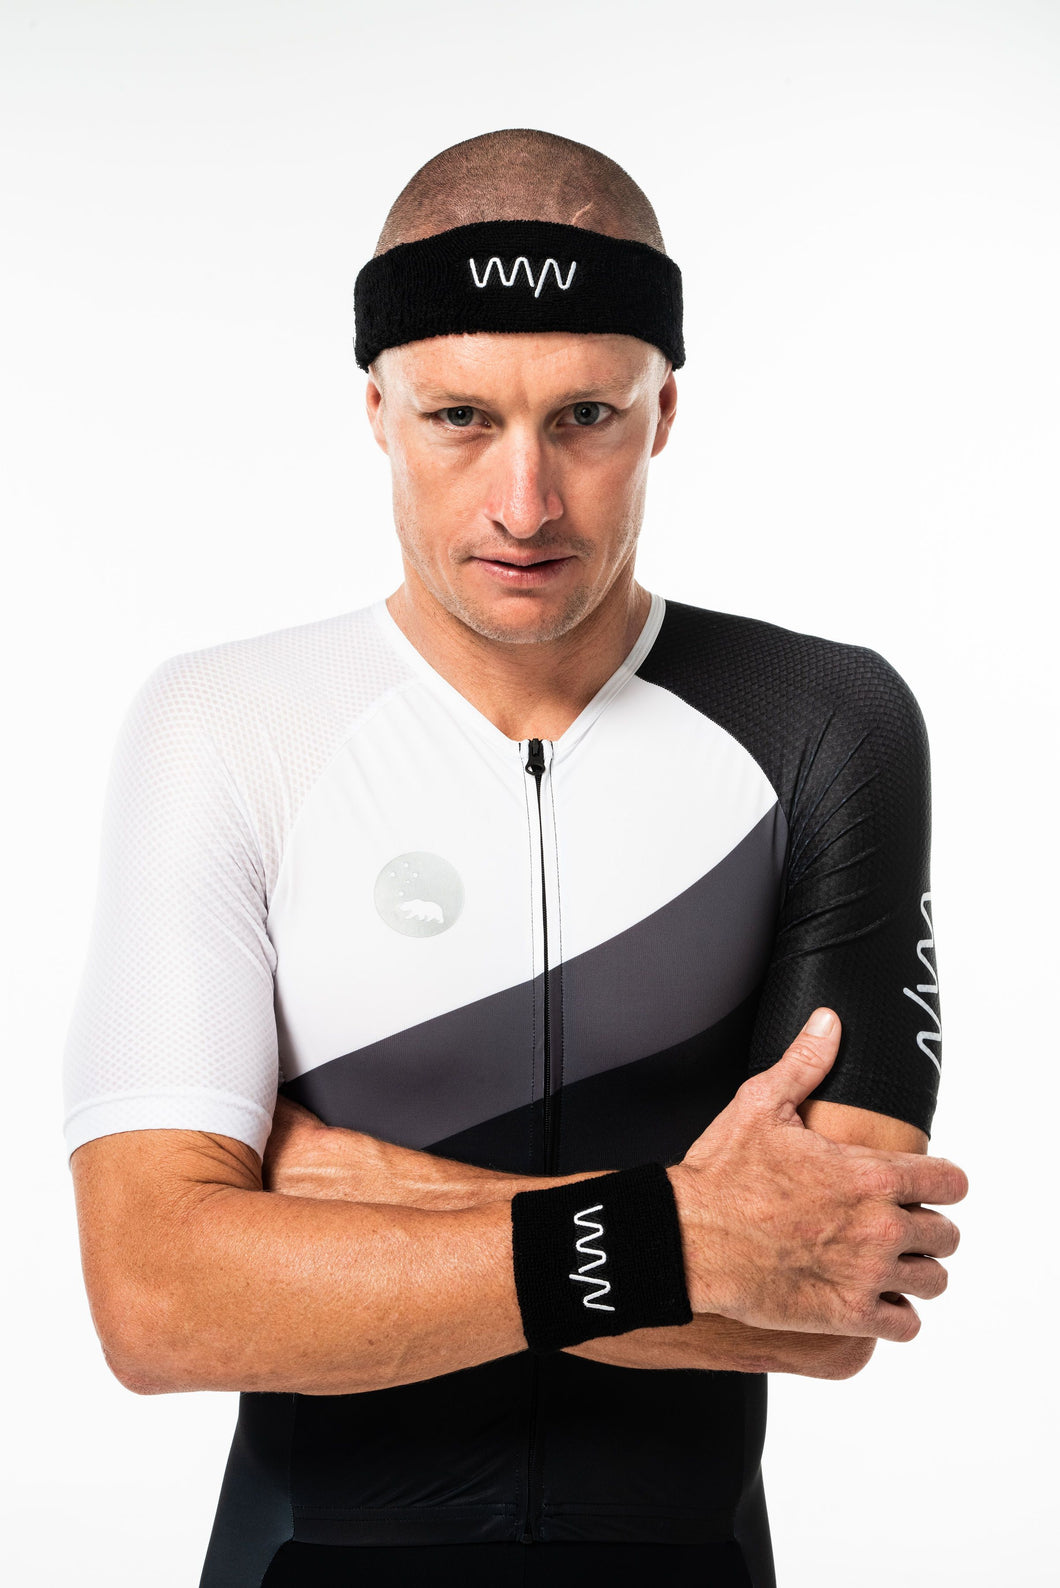 WYN signature sweatband set - black